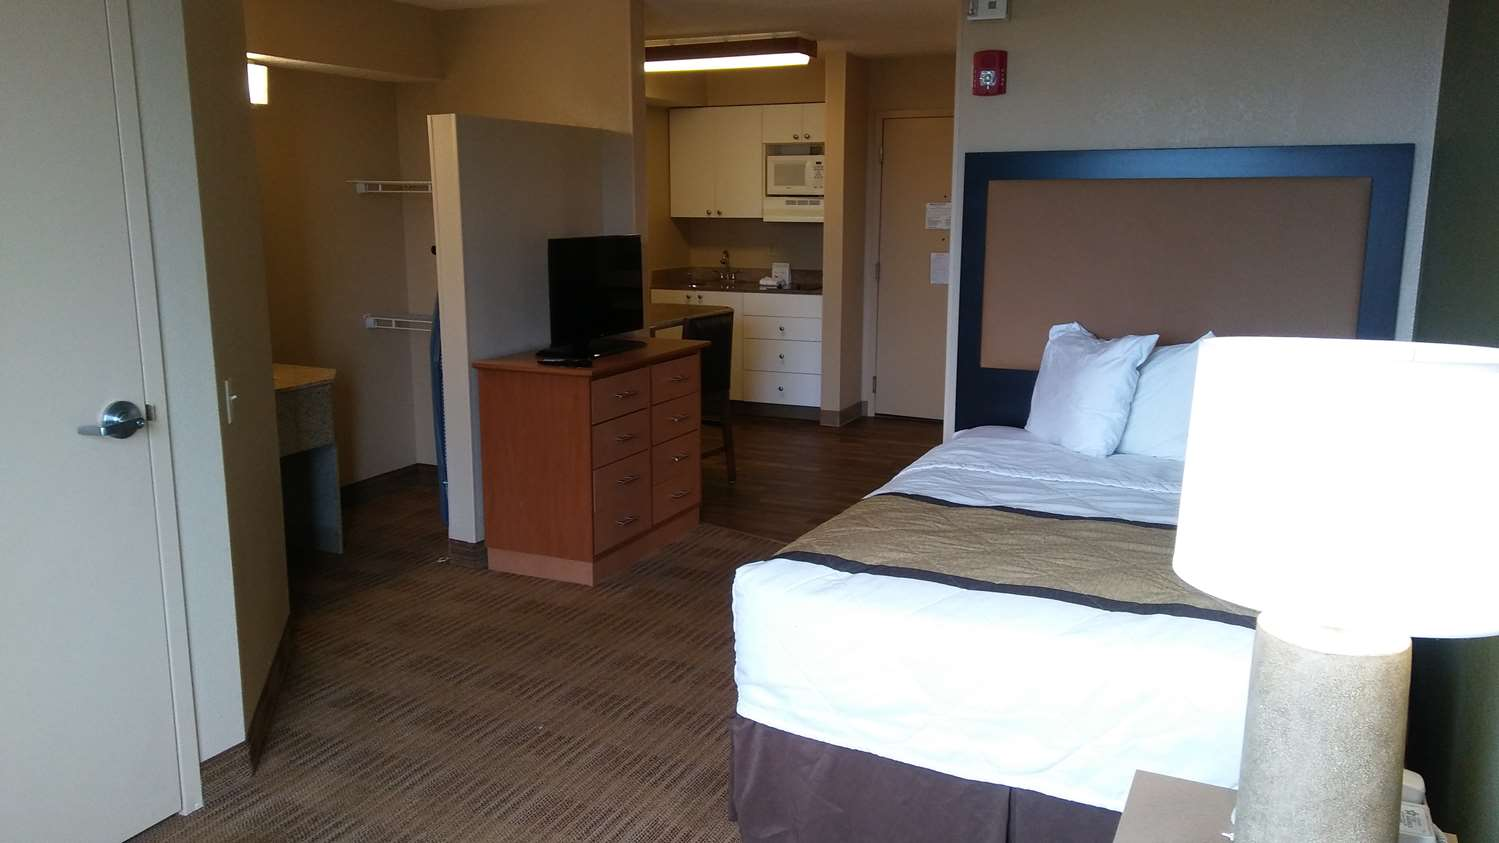 Extended Stay America Hotel Midtown Phoenix, AZ - See Discounts